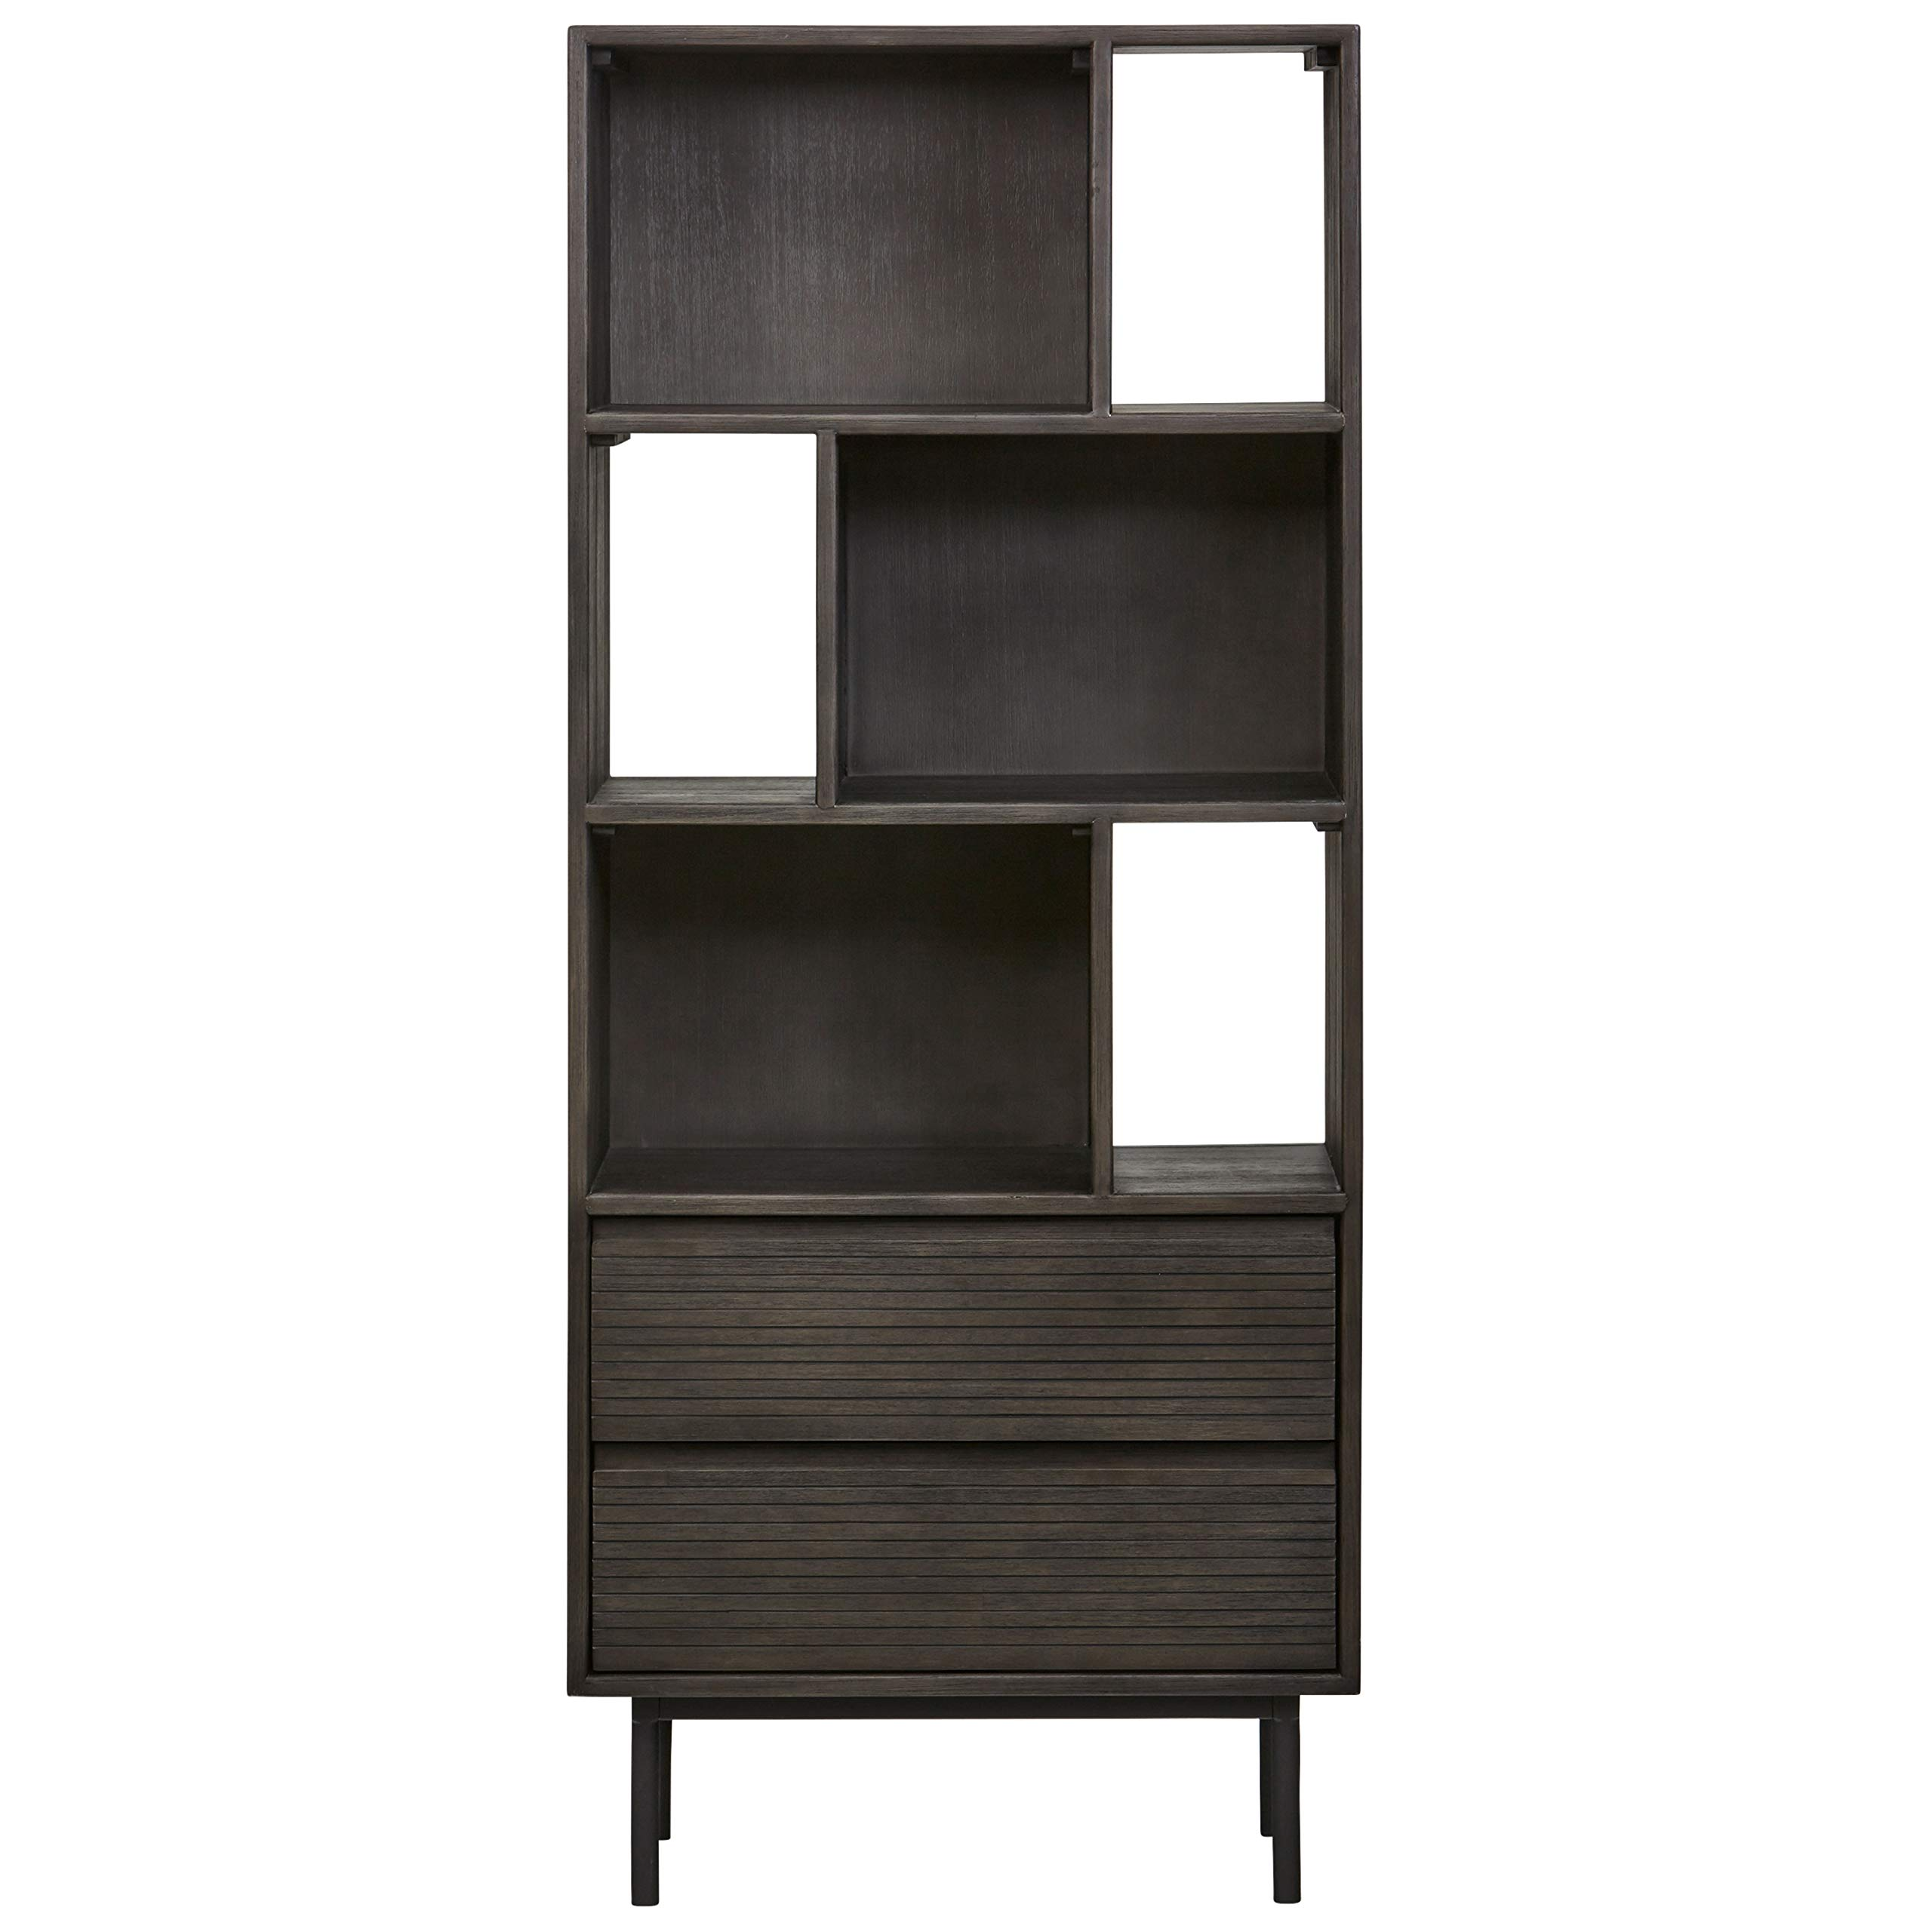 Rivet Stevens Modern Bookcase, 27.56''W, Acacia, Brushed Tundra Gray by Rivet (Image #4)